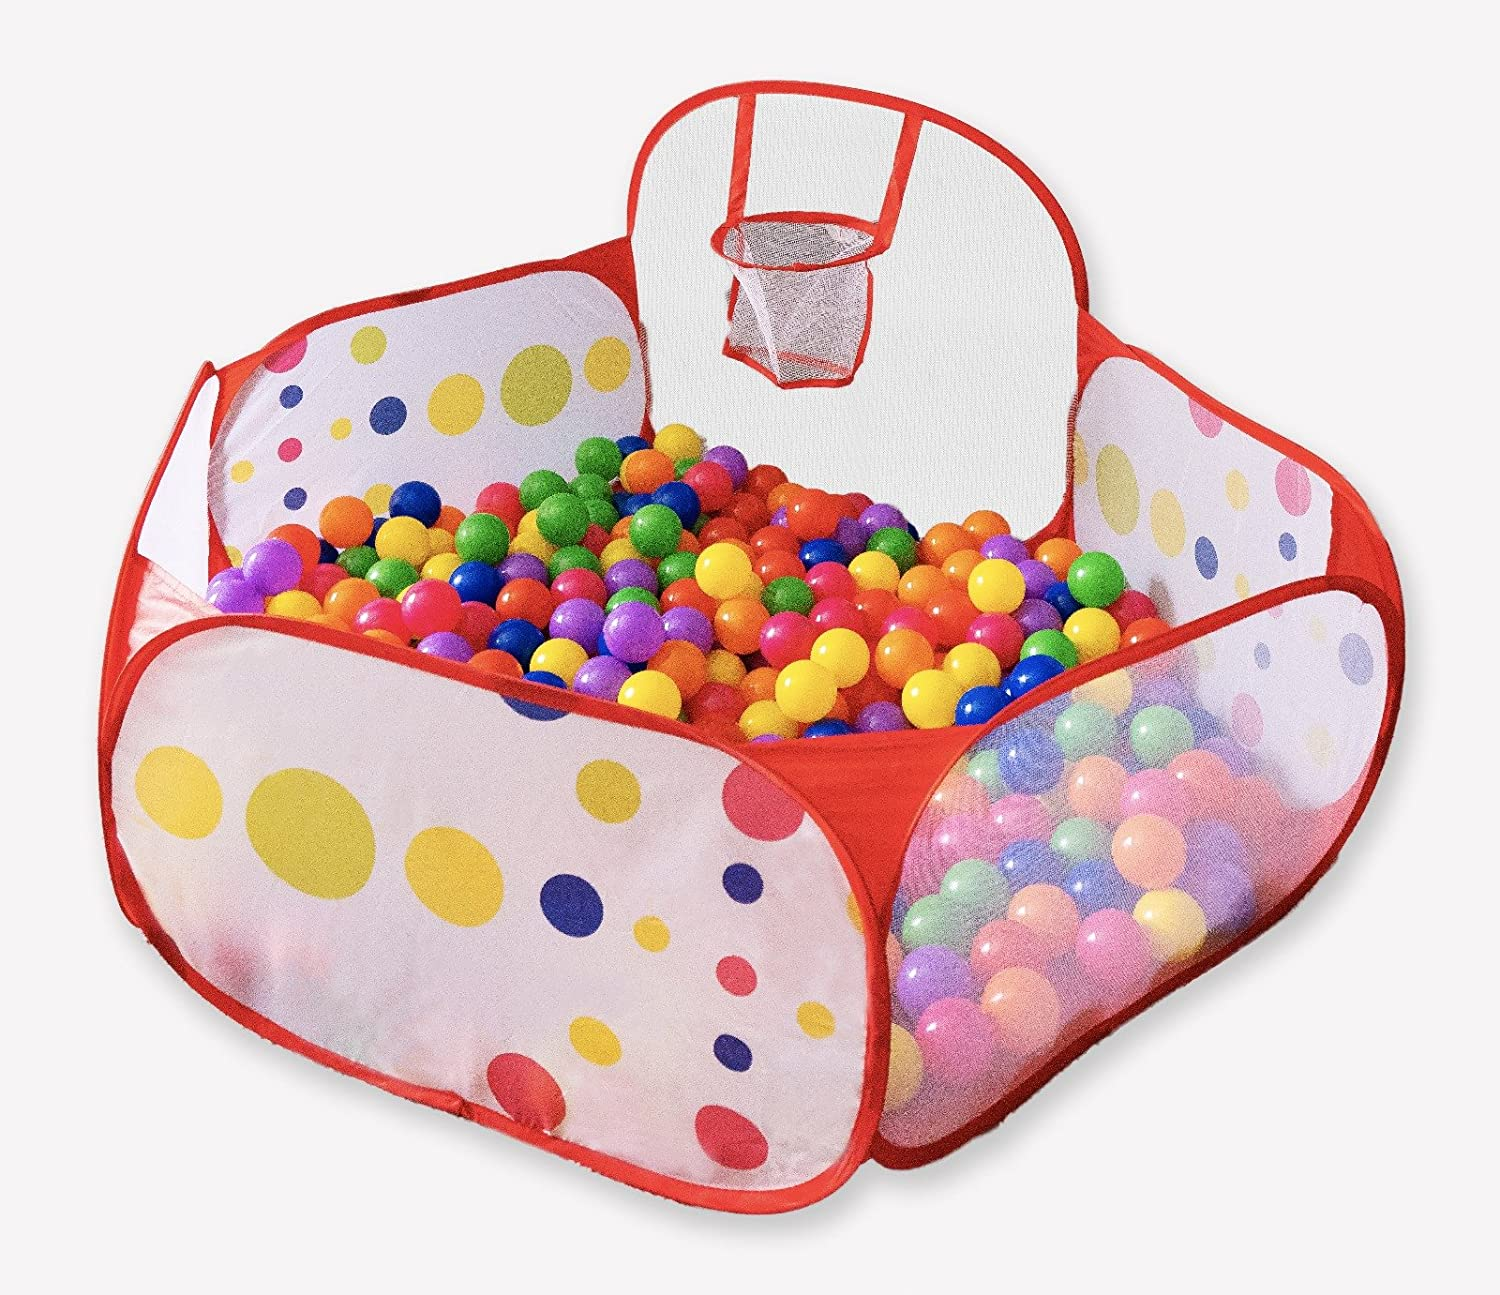 FoxPlay Basketball Ball Pit - Toddler Ball Pit Tent - Sensory Ball Pit with Basketball Hoop and Zippered Storage Bag - 4ft/120cm - Balls Not Included FoxPrint